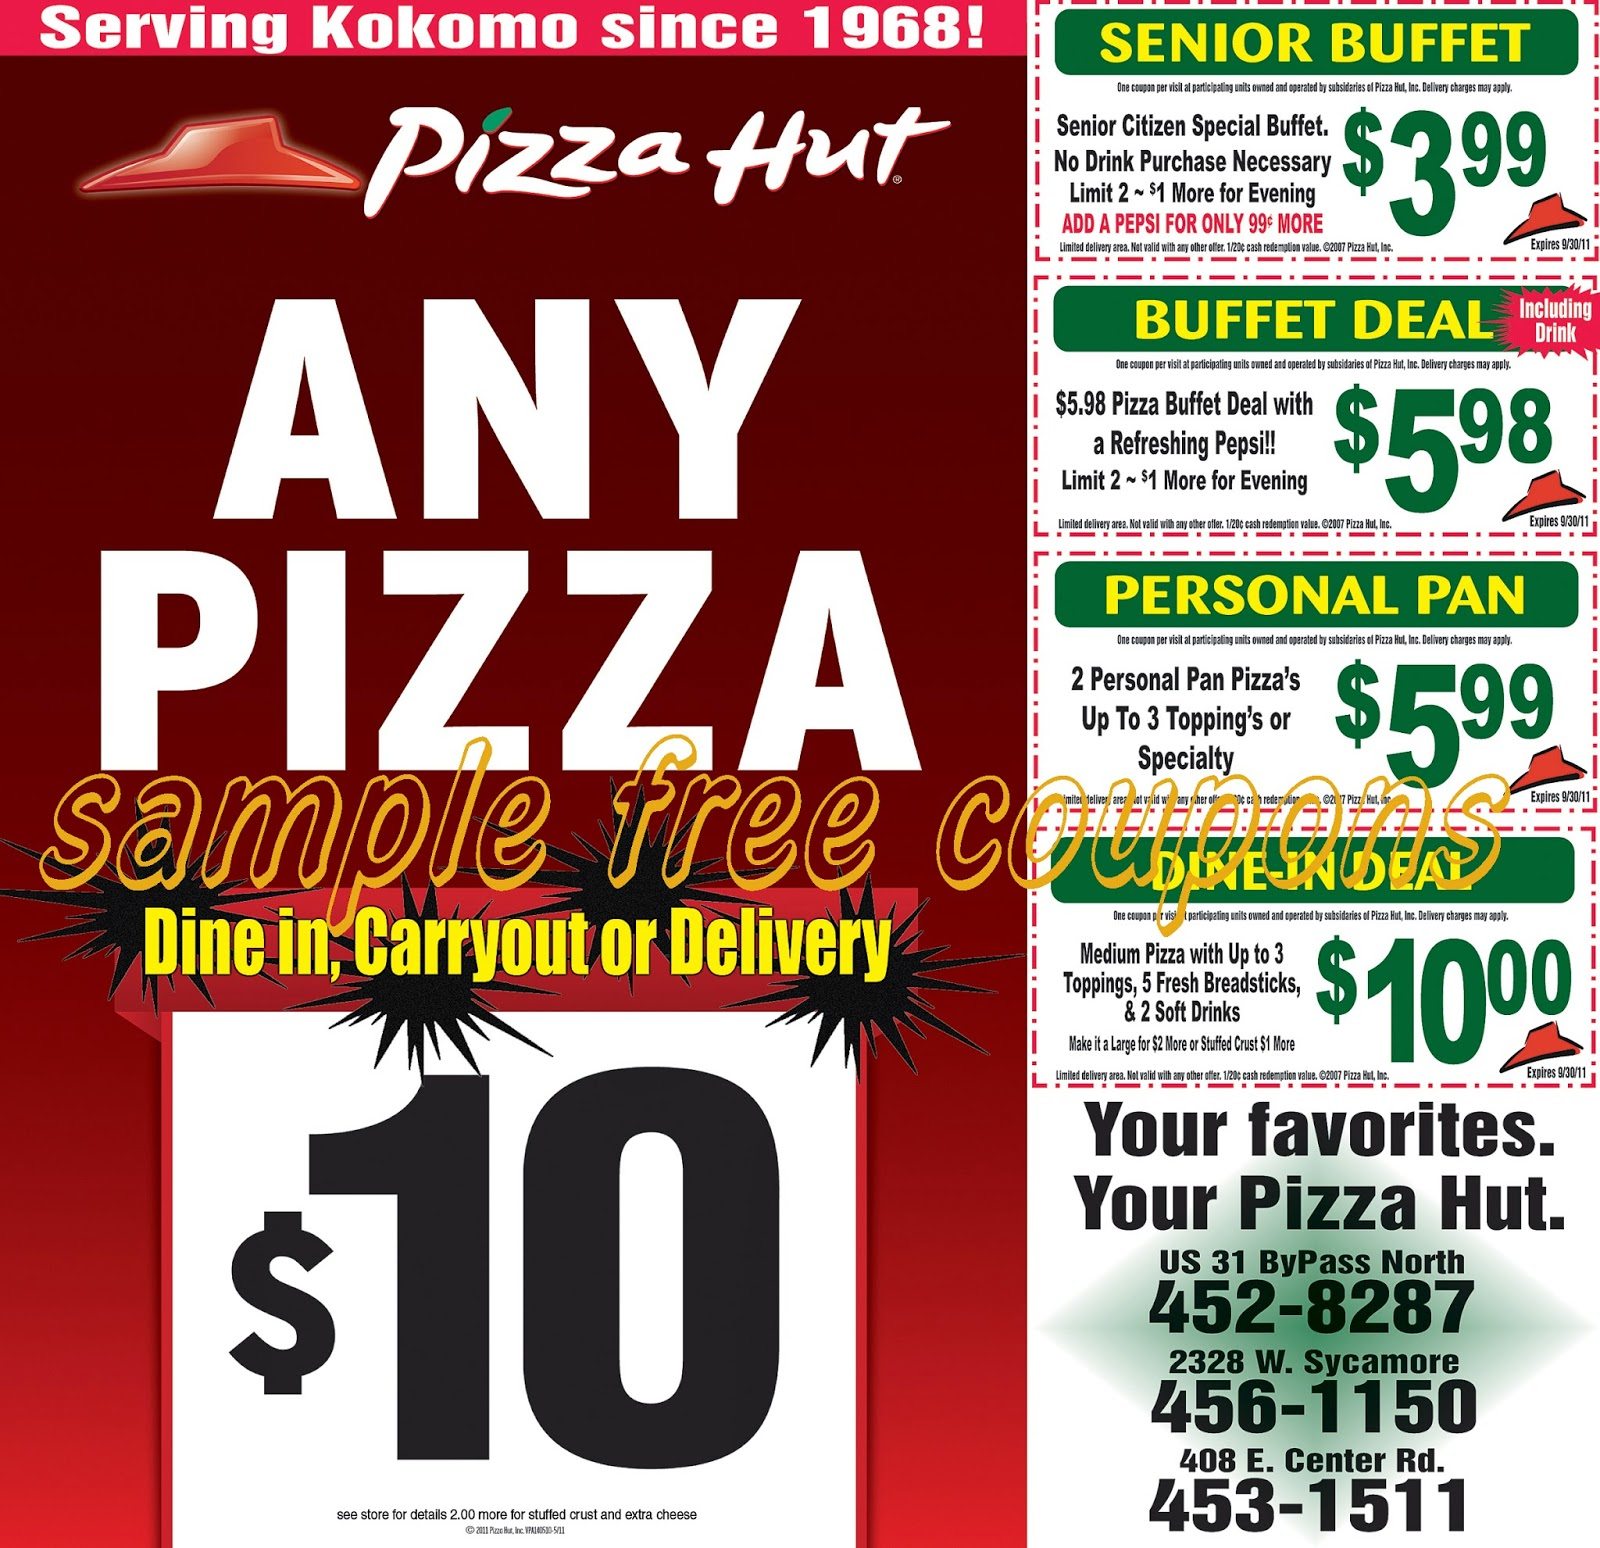 Pizza hut coupon discount